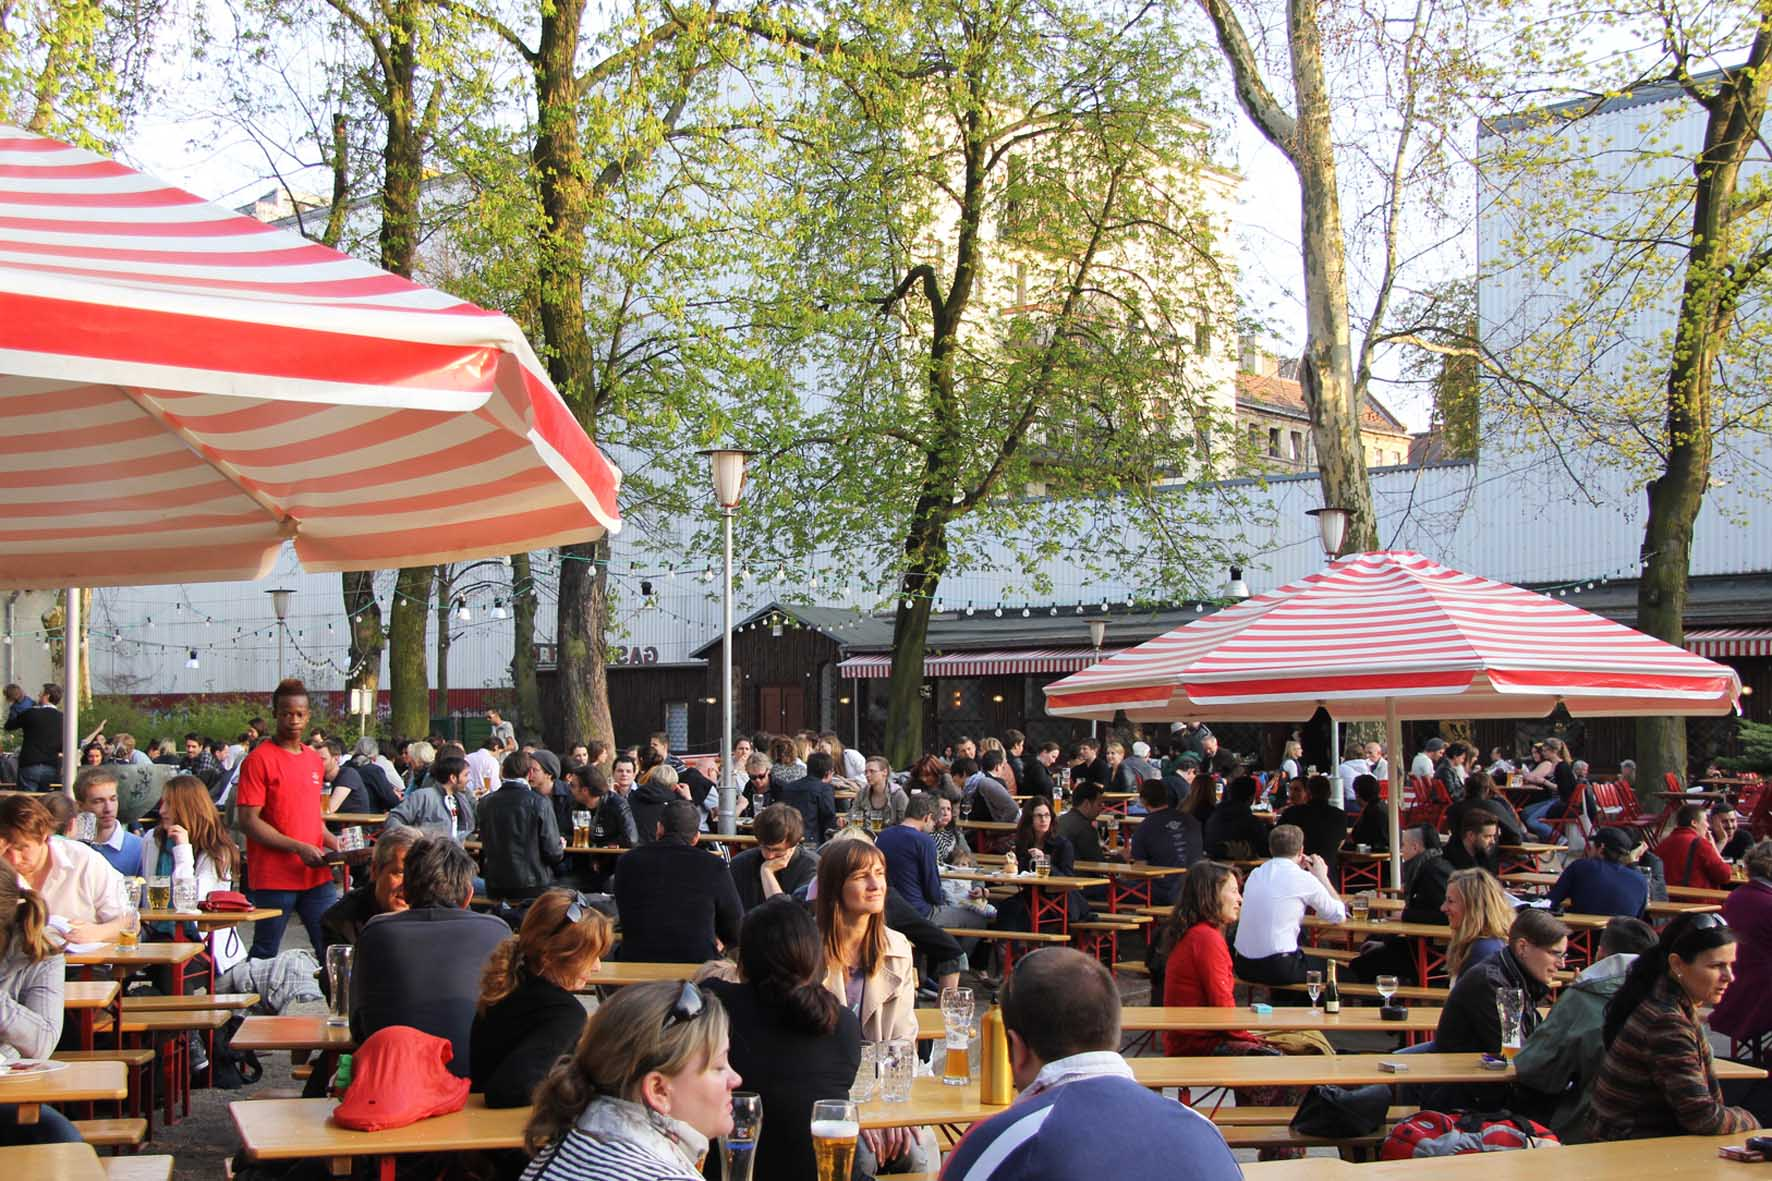 The crowd at PraterGarten Beer Garden in Berlin